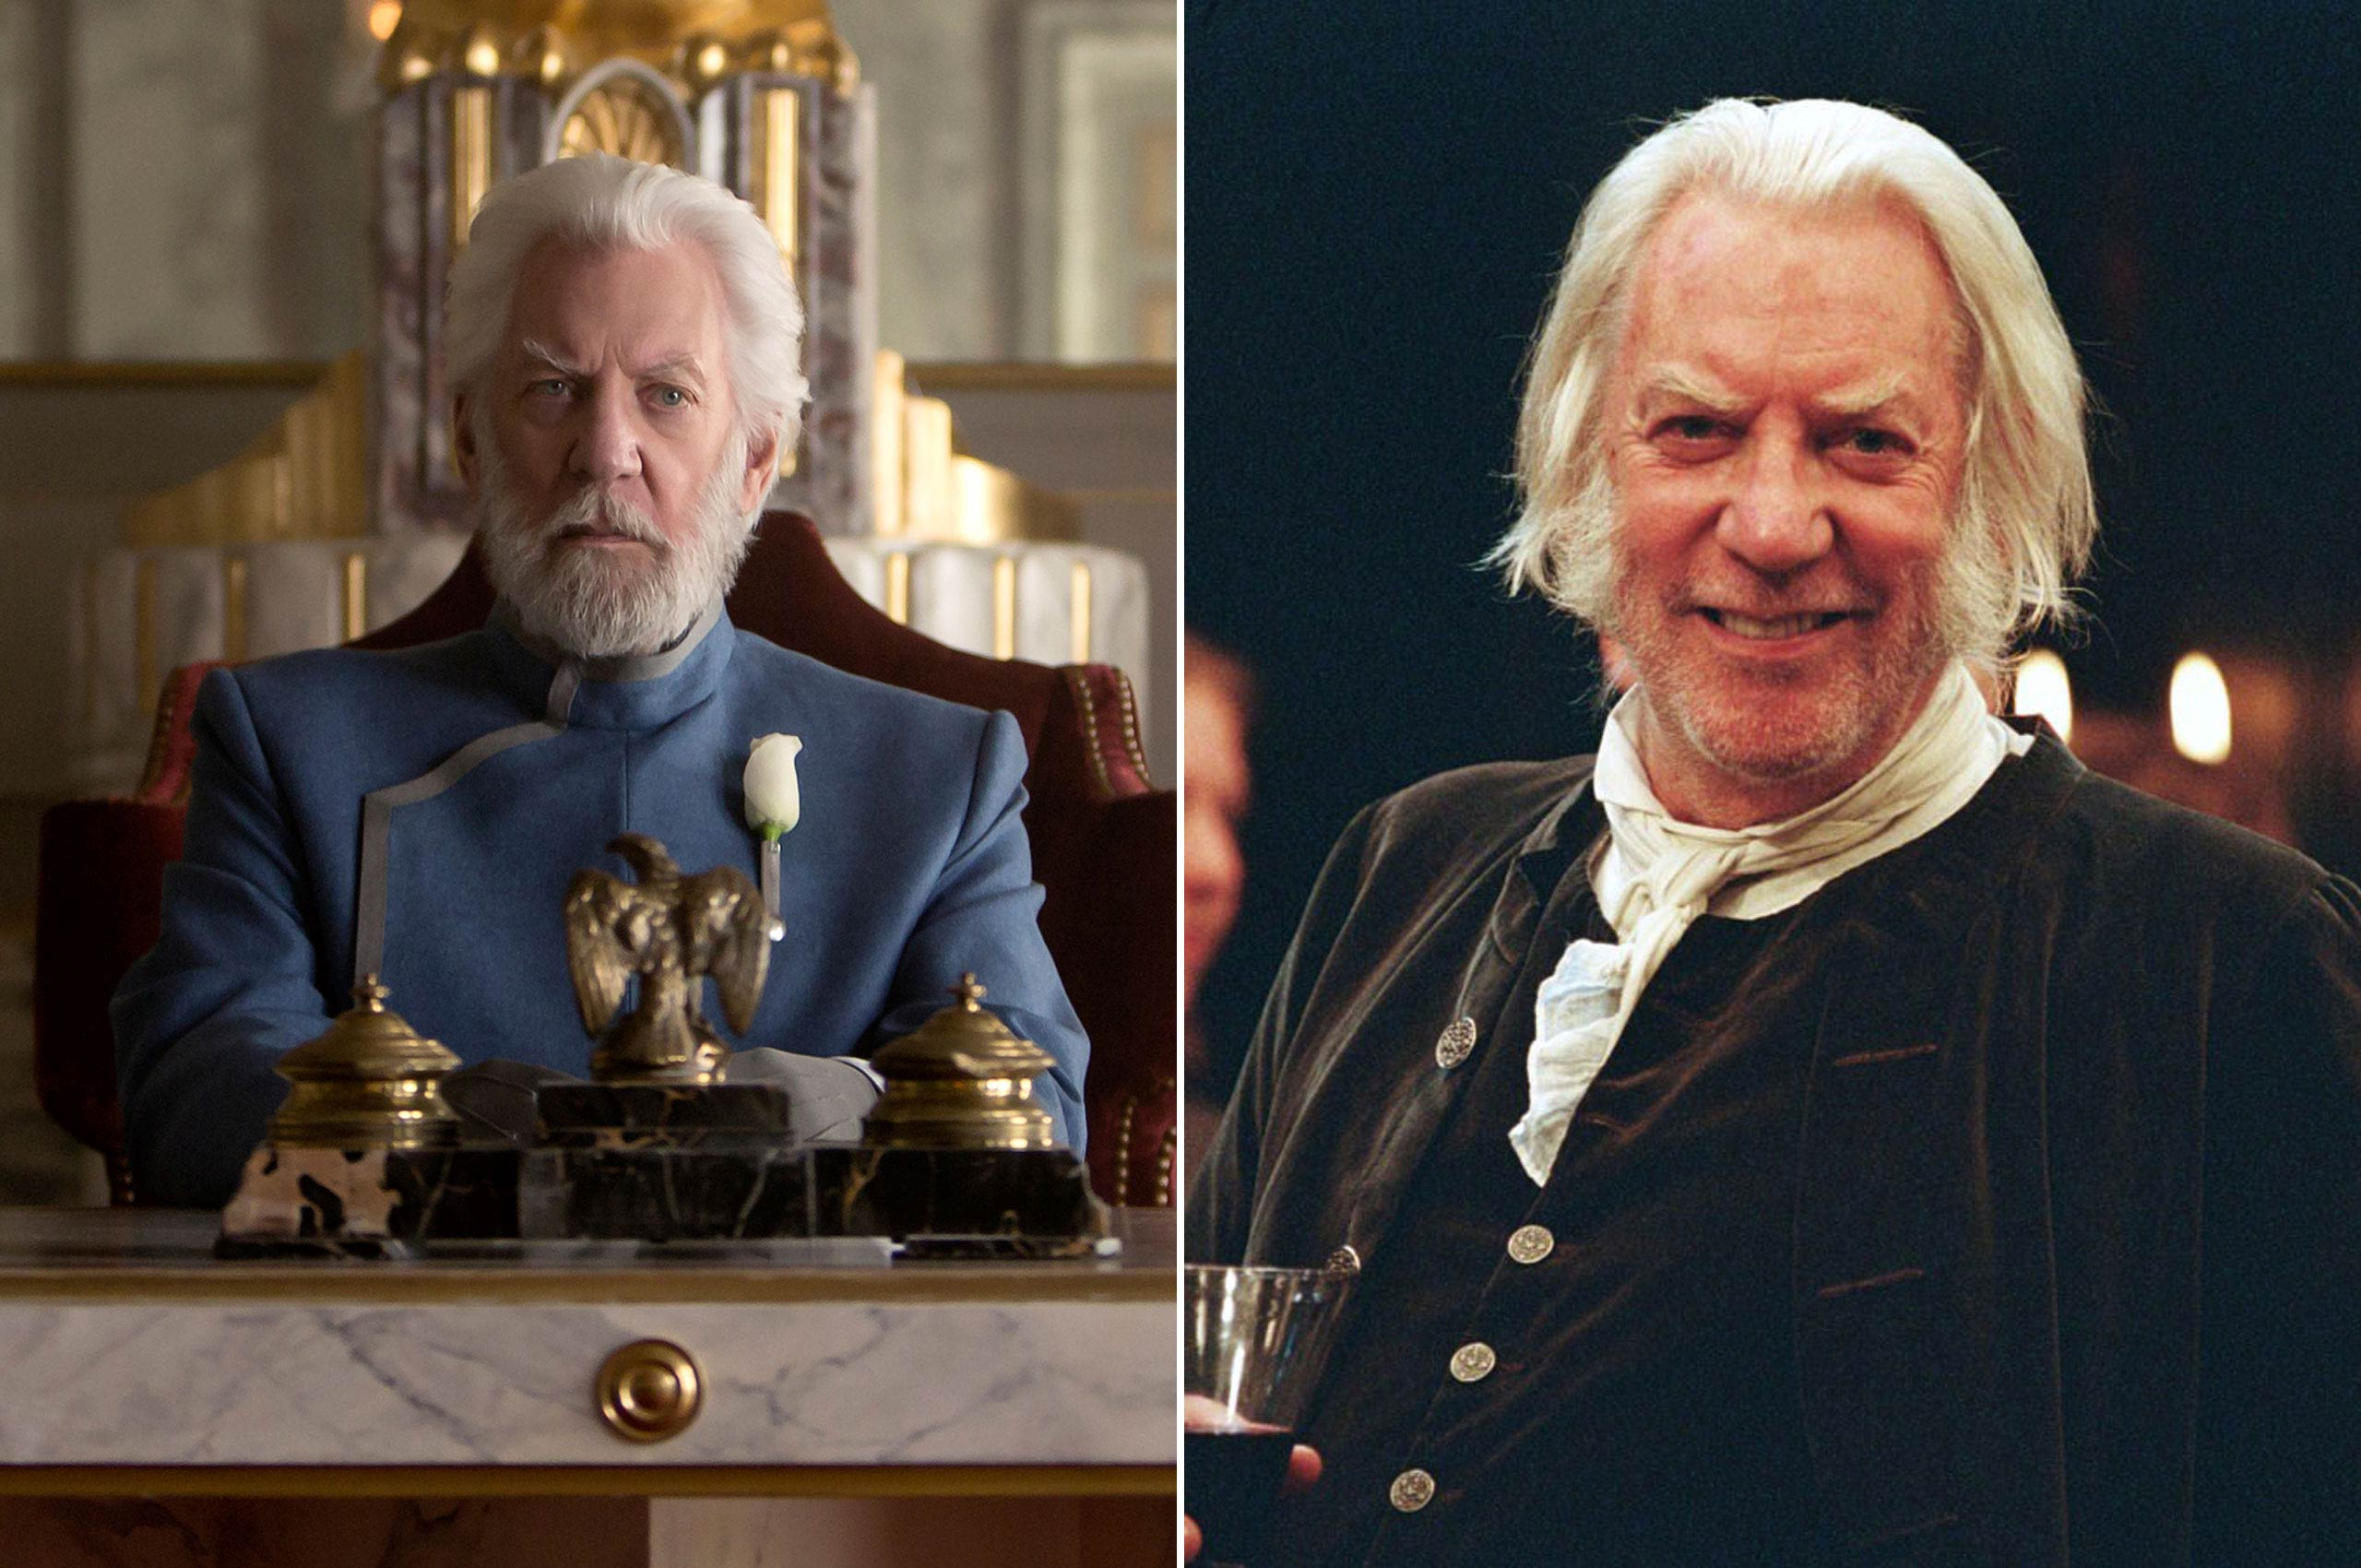 Donald Sutherland may rule Panem with an iron fist, but he showed a much gentler side as Mr. Bennet in the 2005 romance <i>Pride &amp; Prejudice</i>.